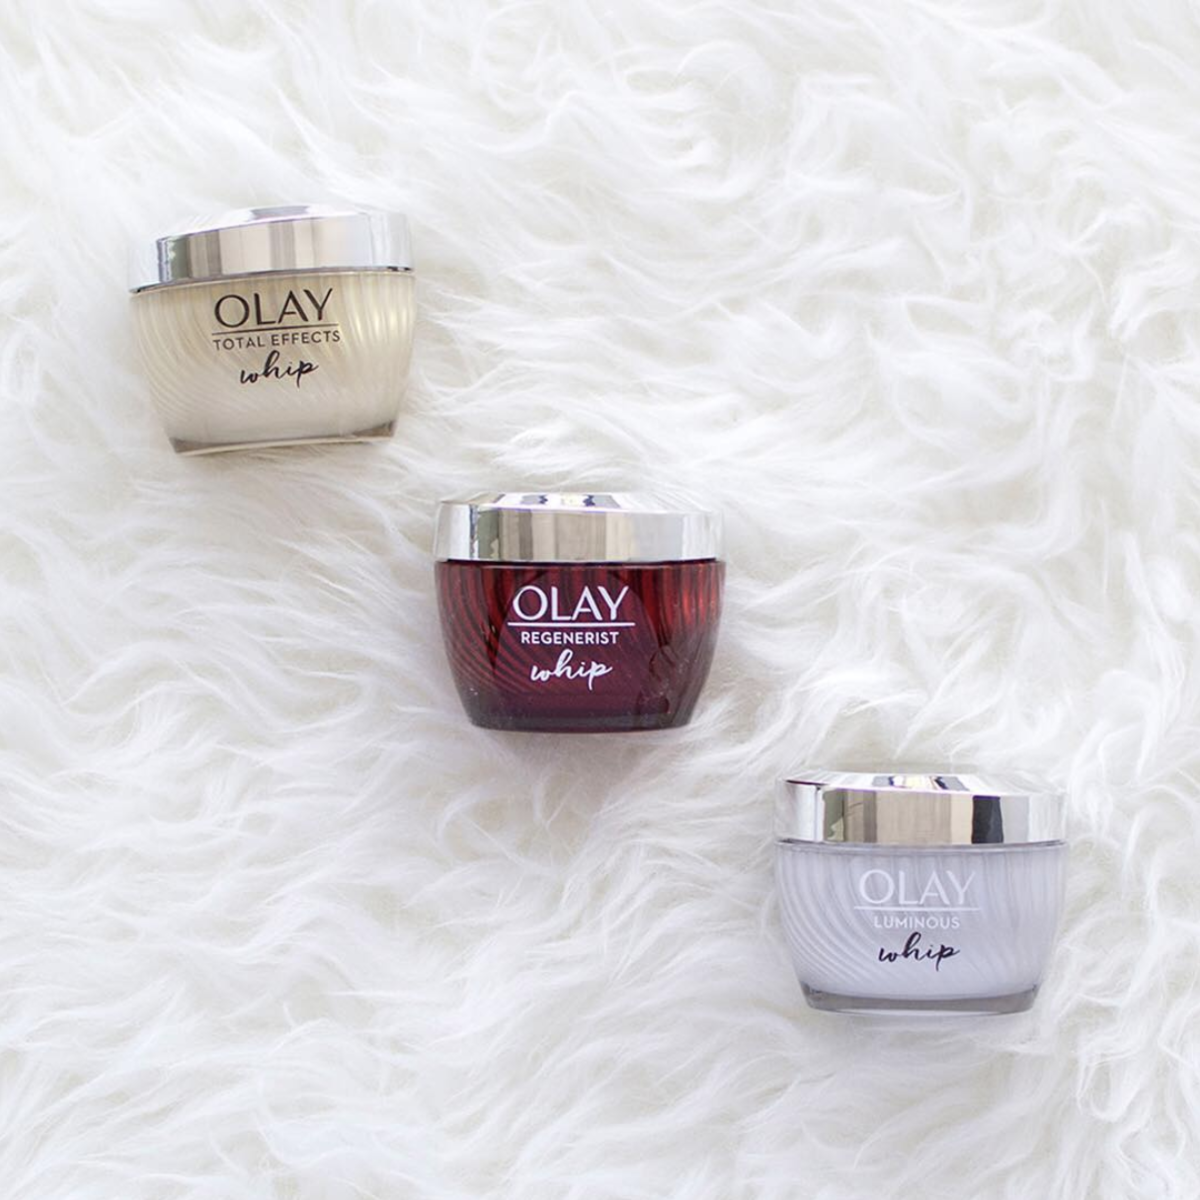 Photo: @olay/Instagram